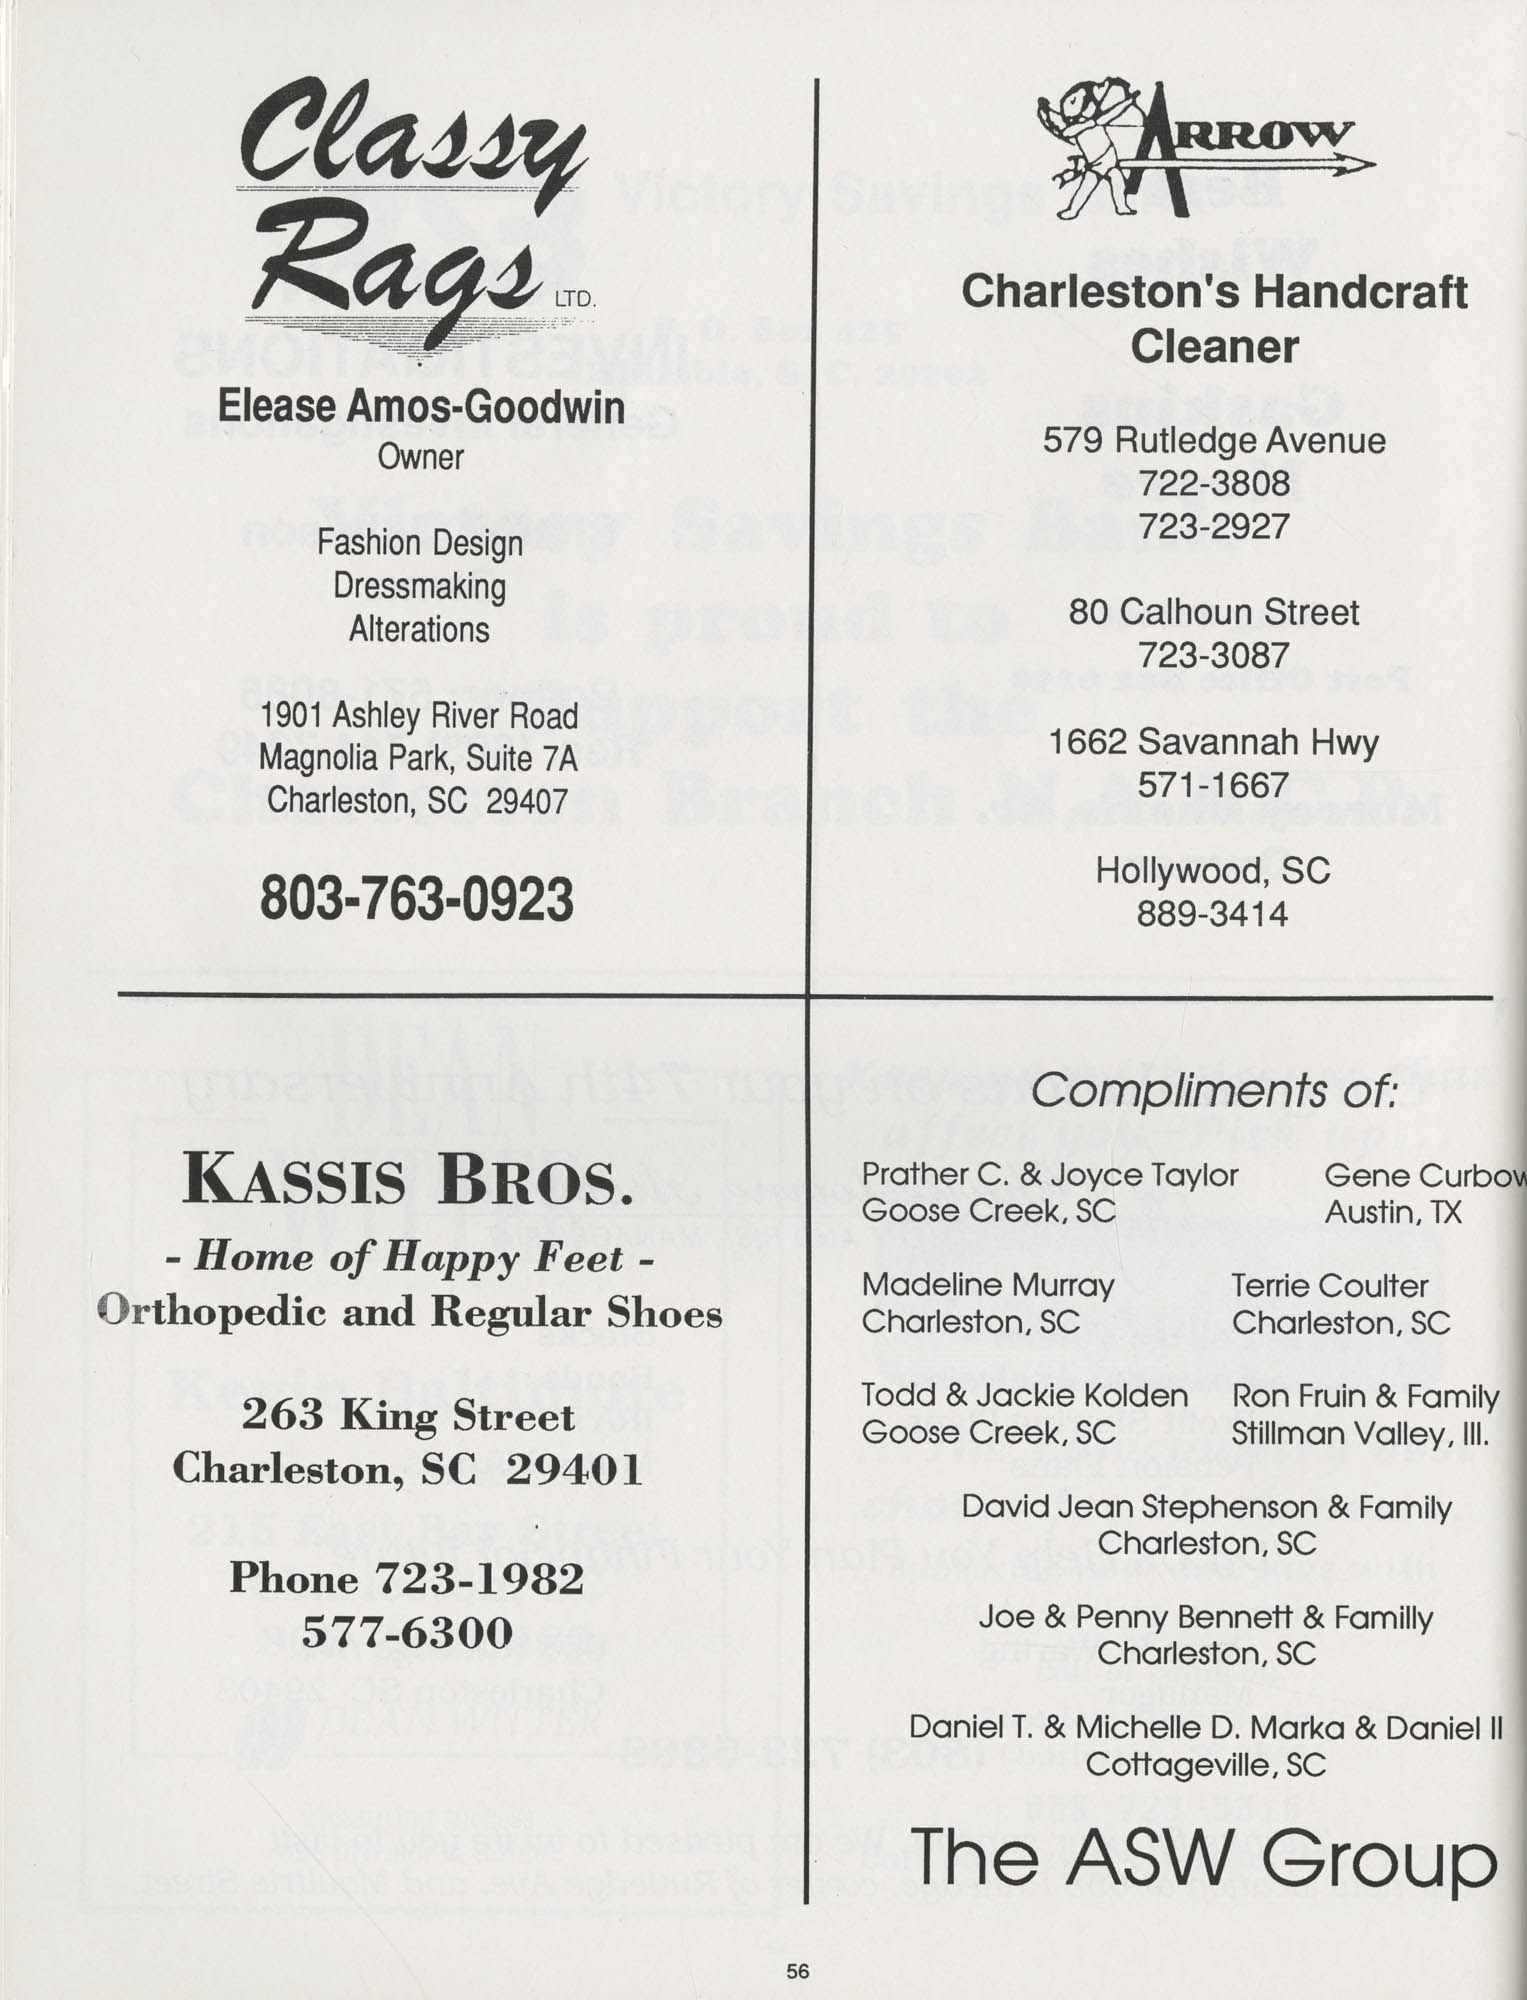 1990 NAACP Freedom Fund Magazine, Charleston Branch of the NAACP, 74th Anniversary, Page 56